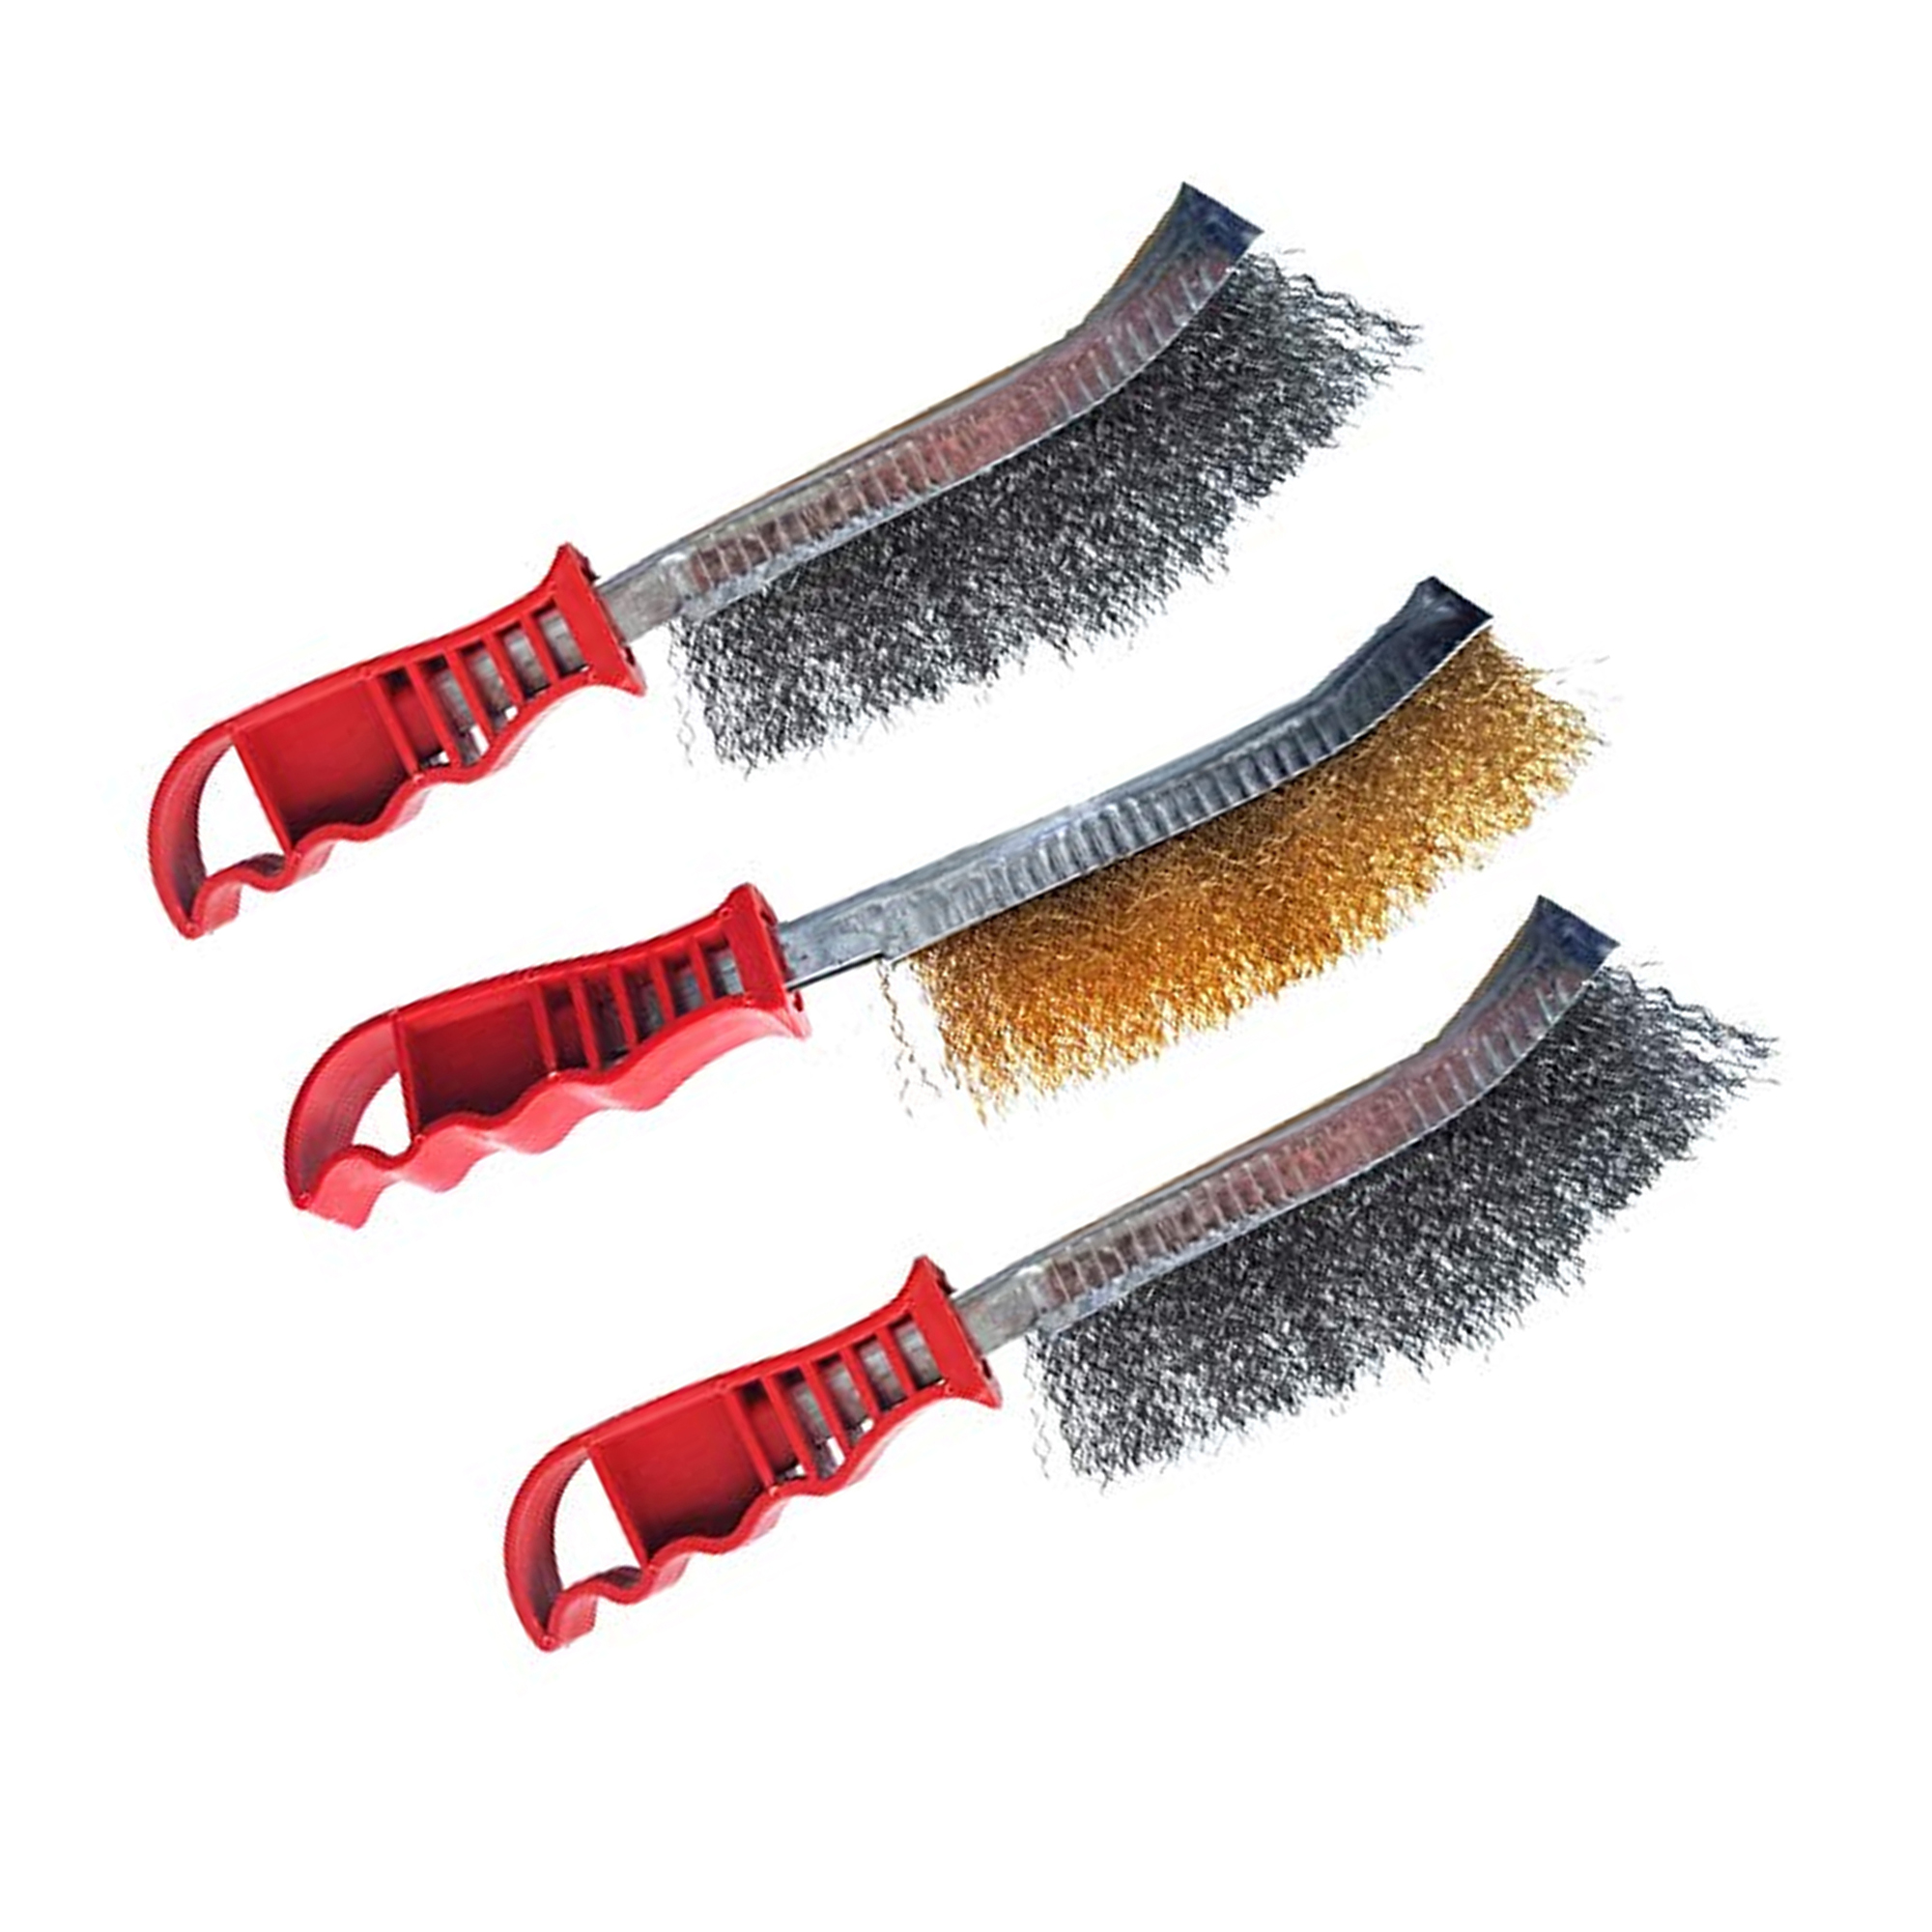 Brush Cleaners & Paint Thinners